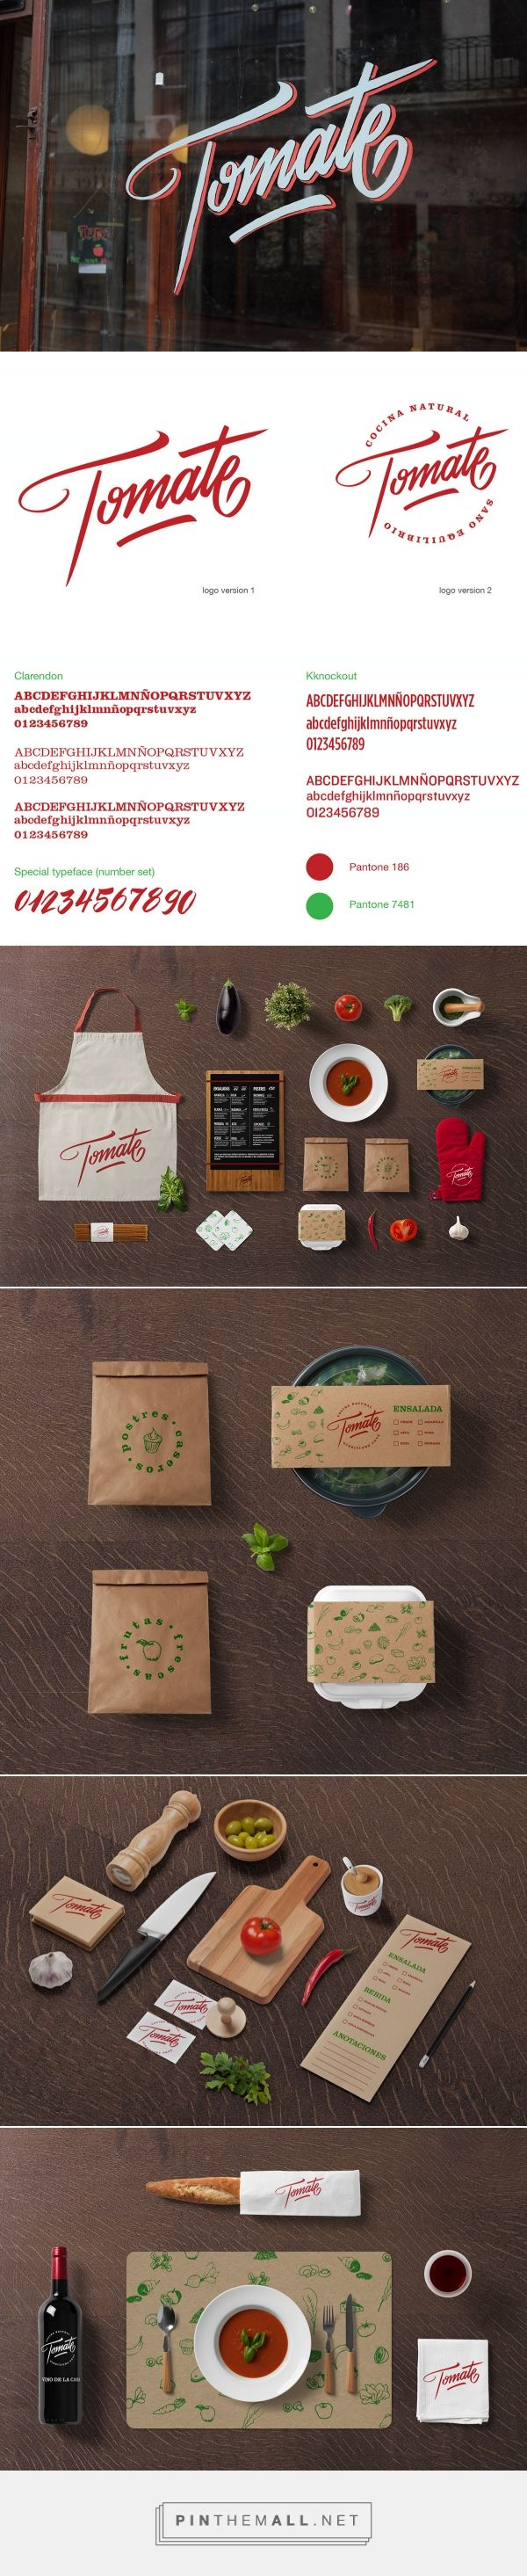 Tomate packaging branding on Behance via re-robot studio Montevideo, Uruguay curated by Packaging Diva PD. Identity for a healthy Restaurant in the old town part of Montevideo.